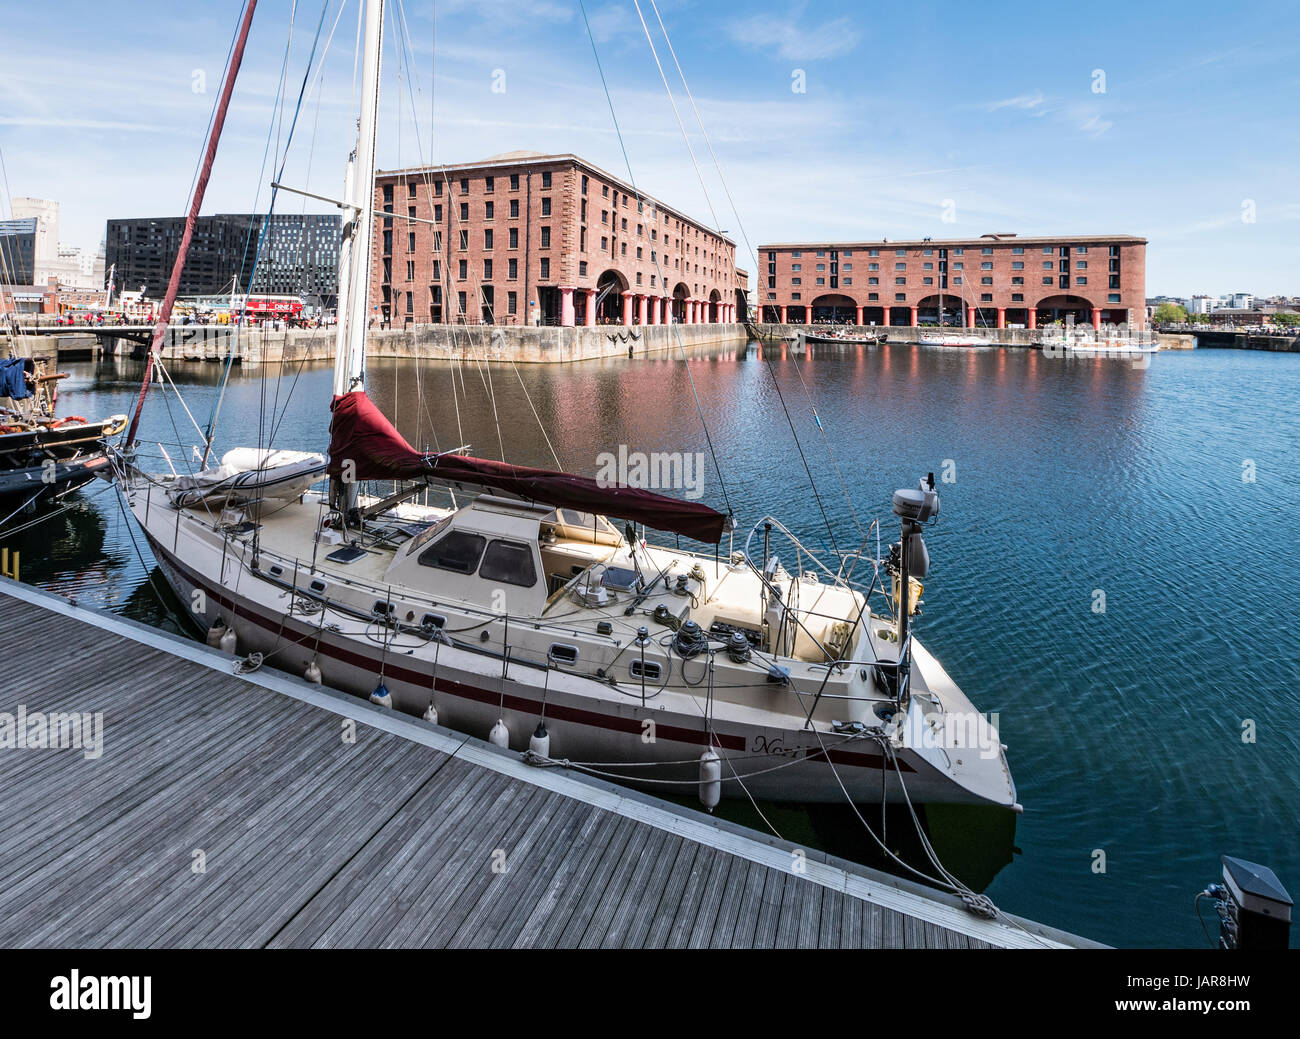 The Albert Dock complex of dock buildings and warehouses was opened in 1846, in Liverpool, England. Designed by - Stock Image